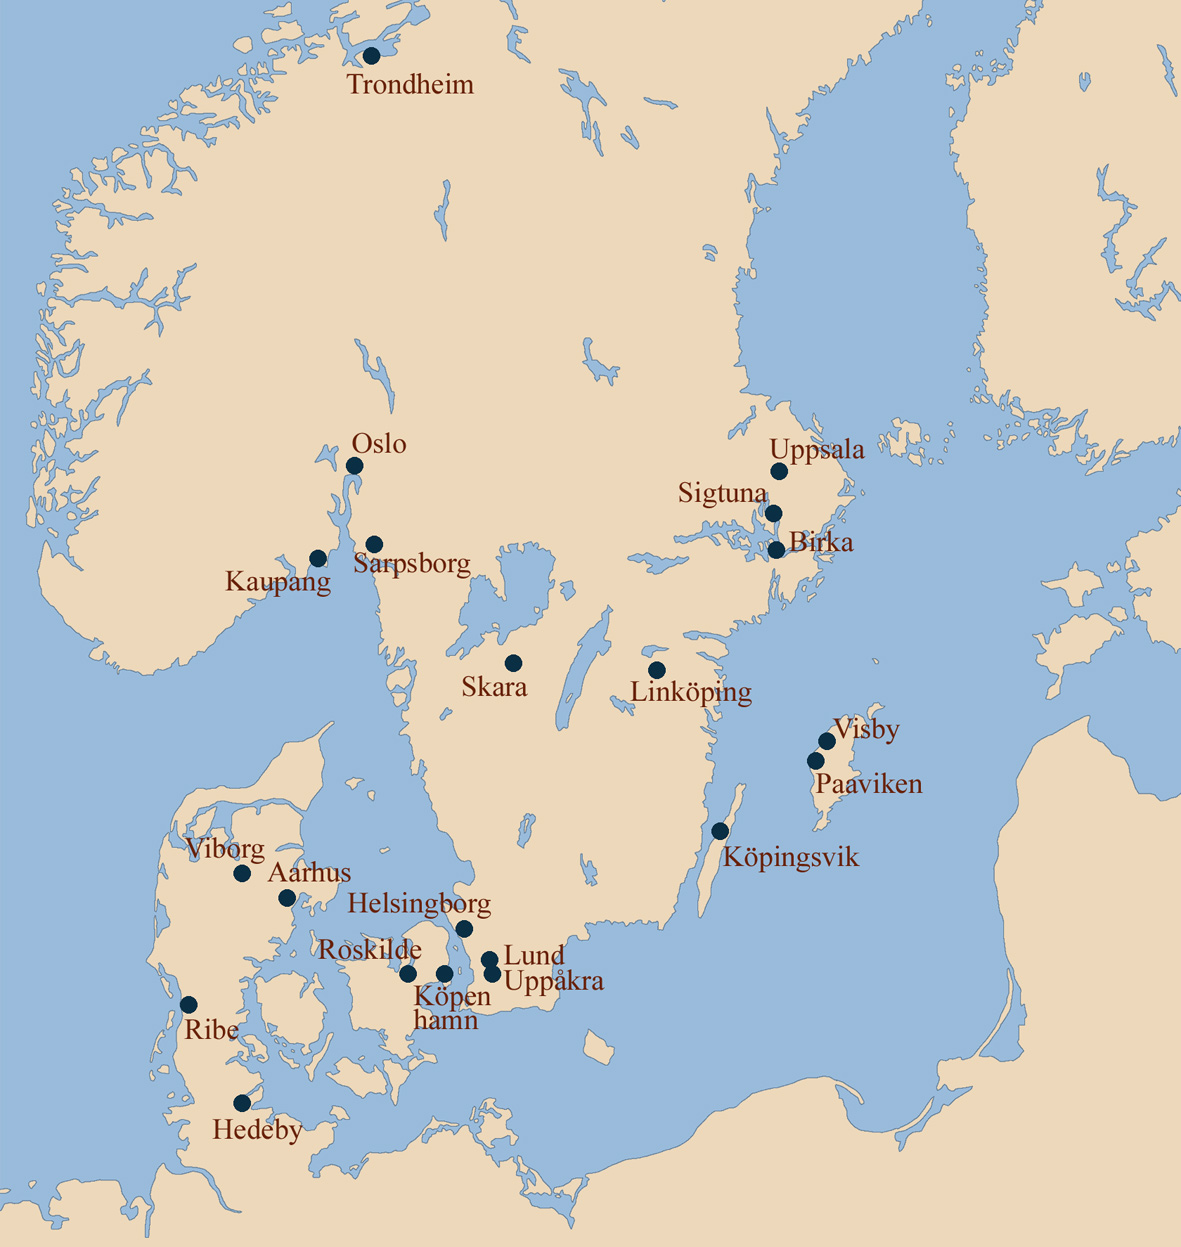 Commerce And Key Markets In Scandinavia During The Viking Era